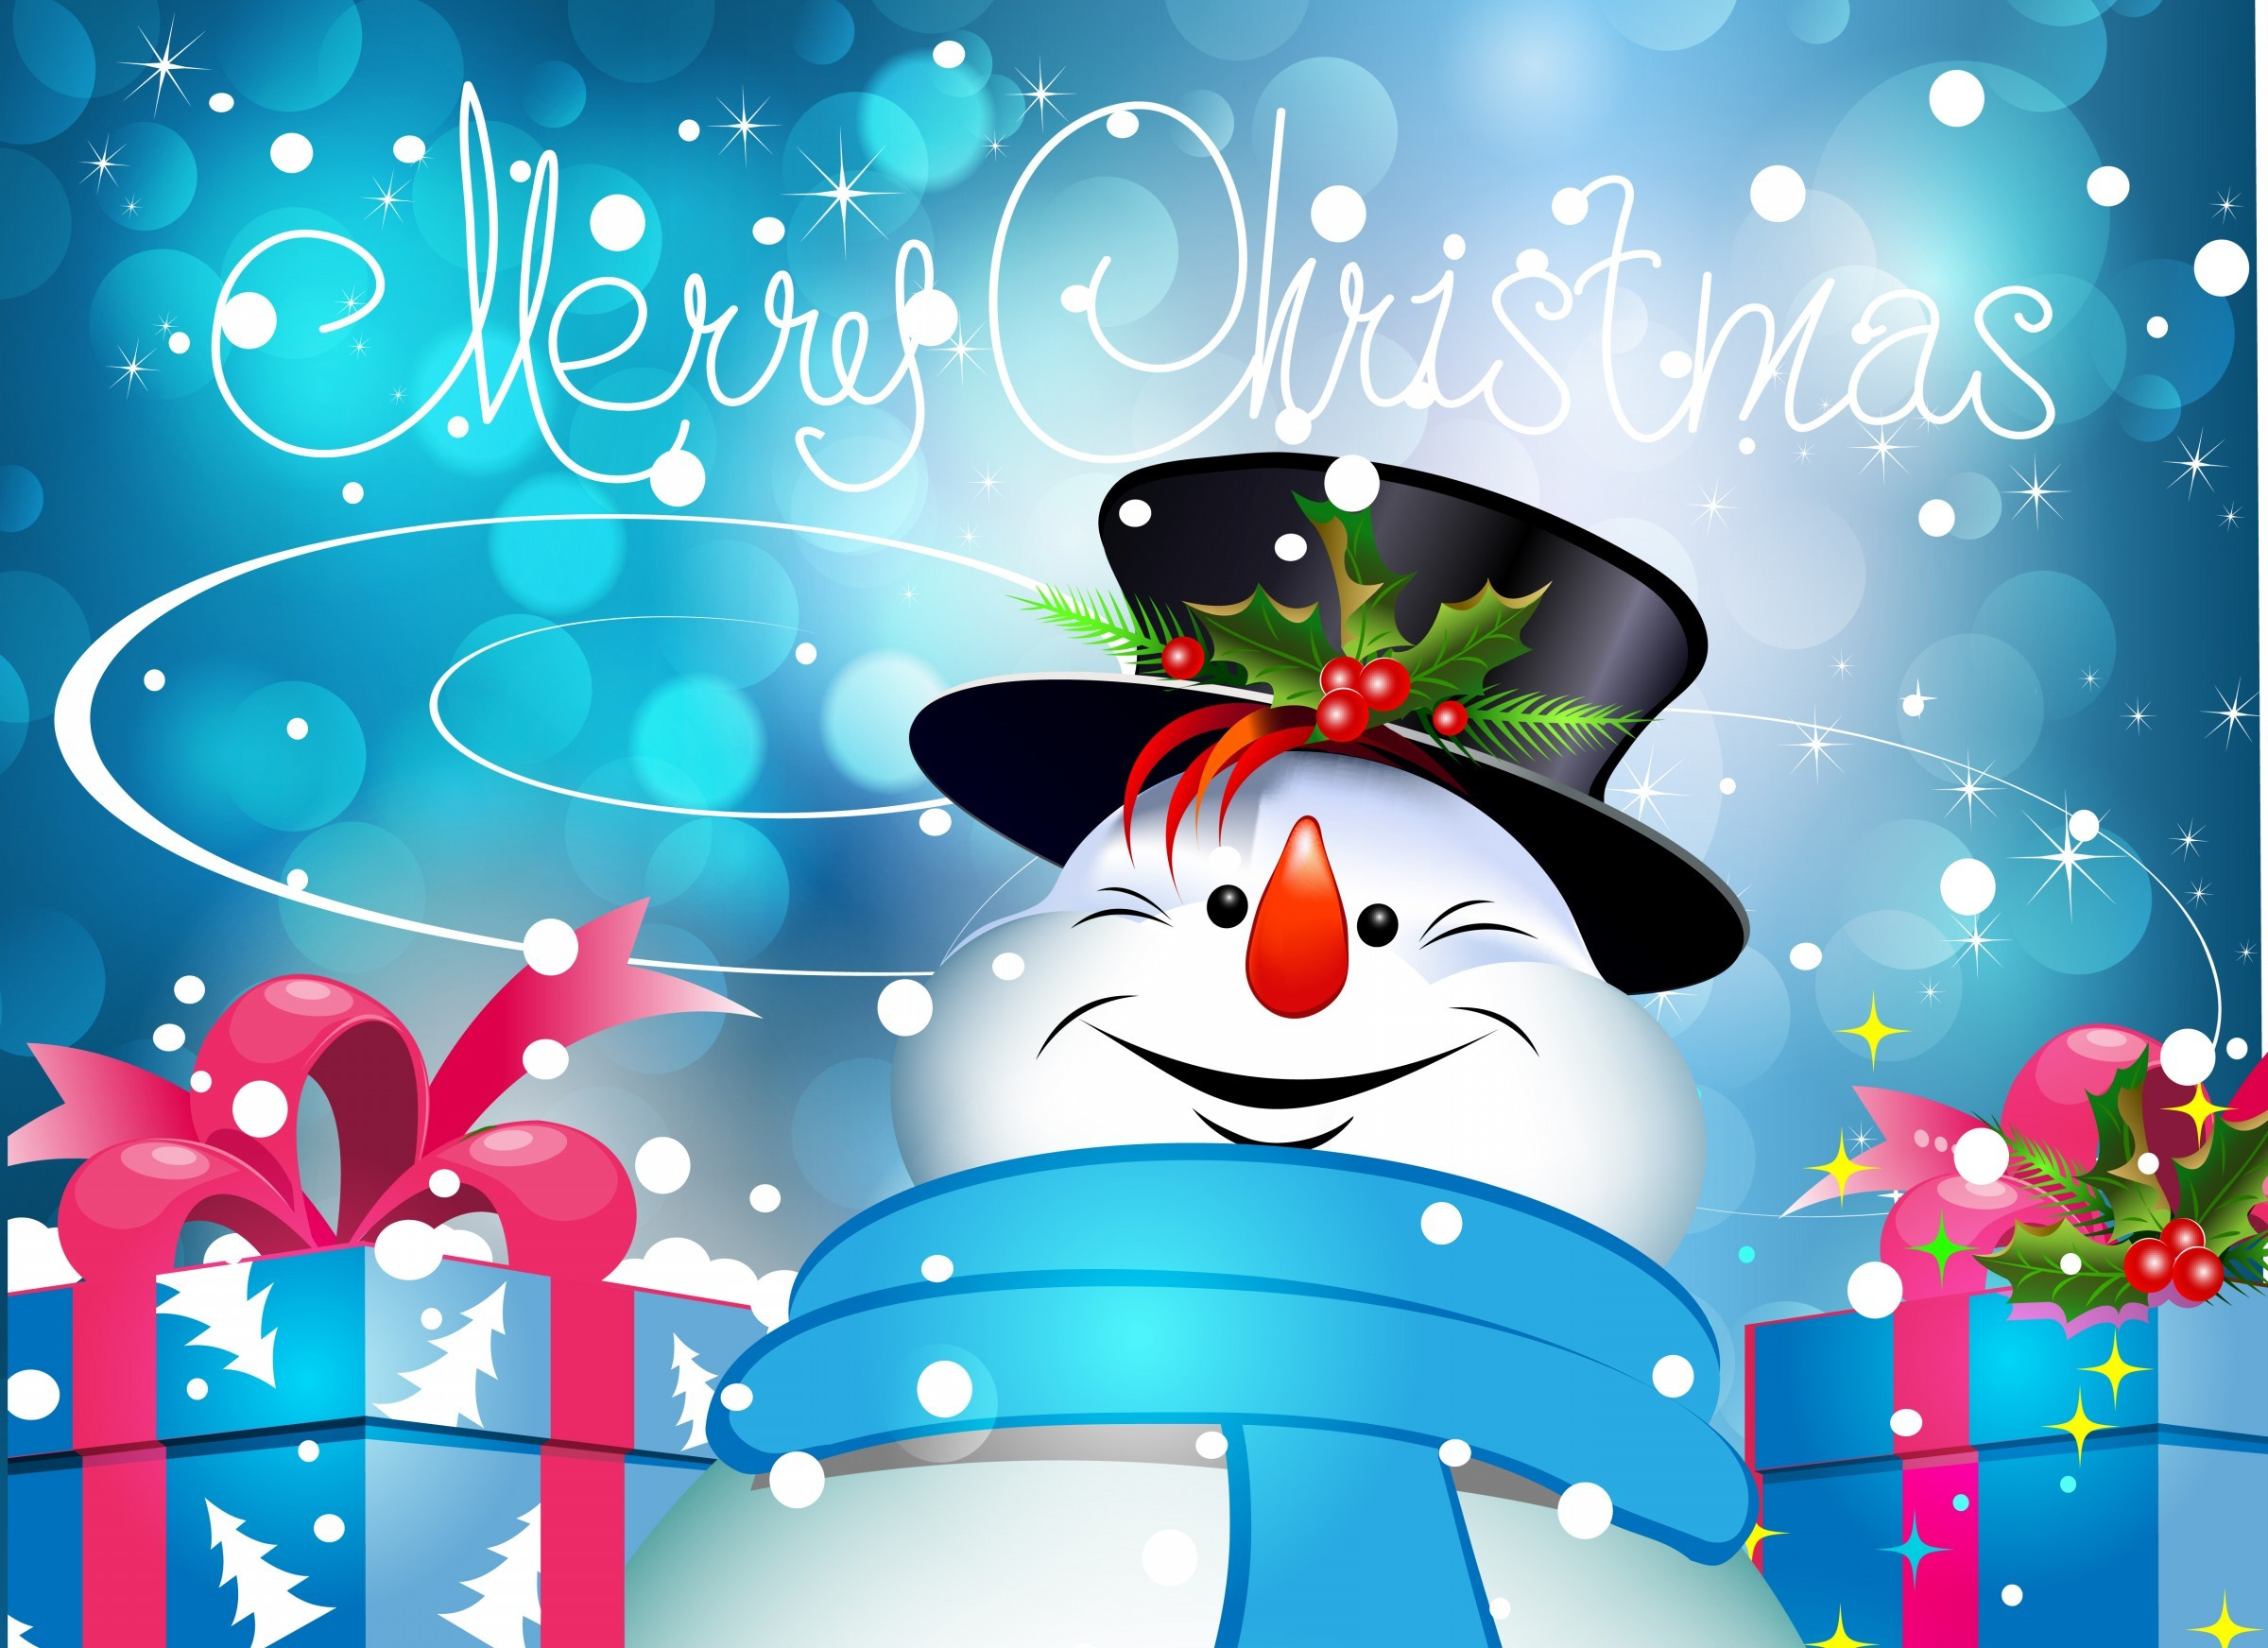 2400x1744 free download christmas desktop wallpaper 2400x1744 for android 50